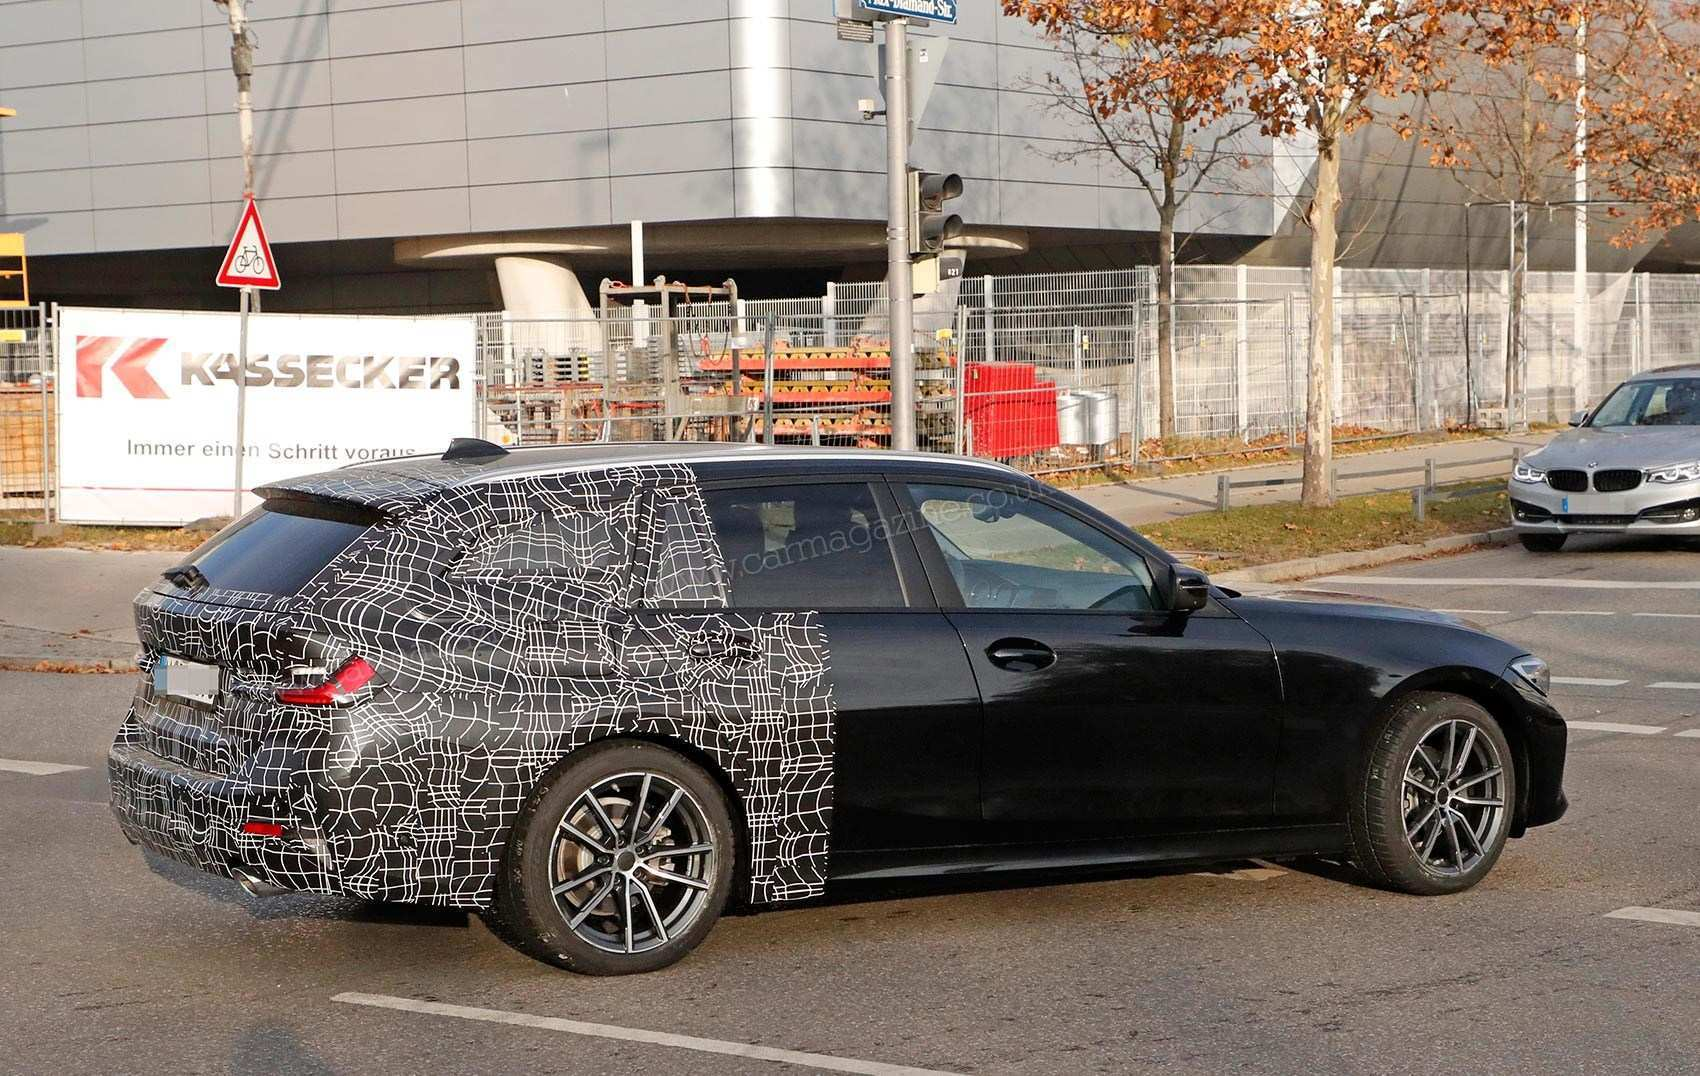 92 Great 2019 Bmw 3 Series Electric Spy Shoot Release Date for 2019 Bmw 3 Series Electric Spy Shoot